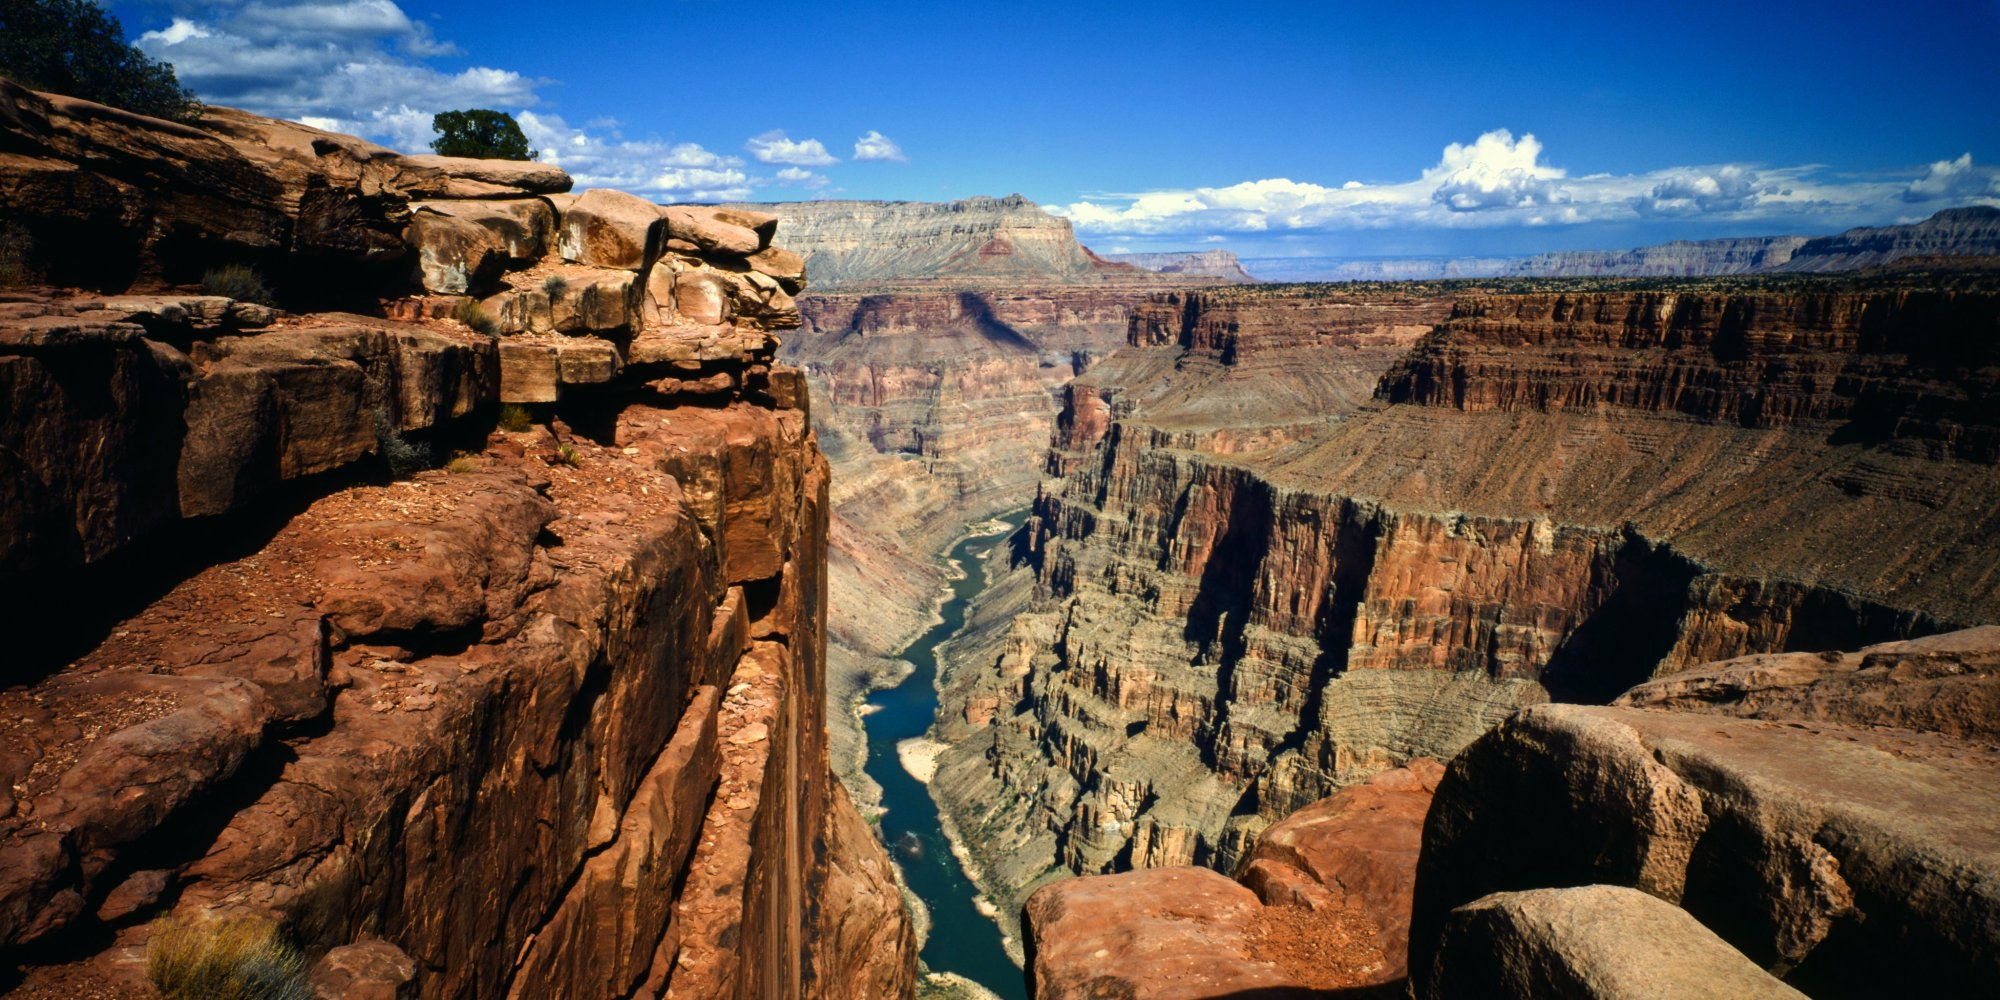 Canyon wallpapers Earth HQ Canyon pictures 4K Wallpapers 2019 2000x1000